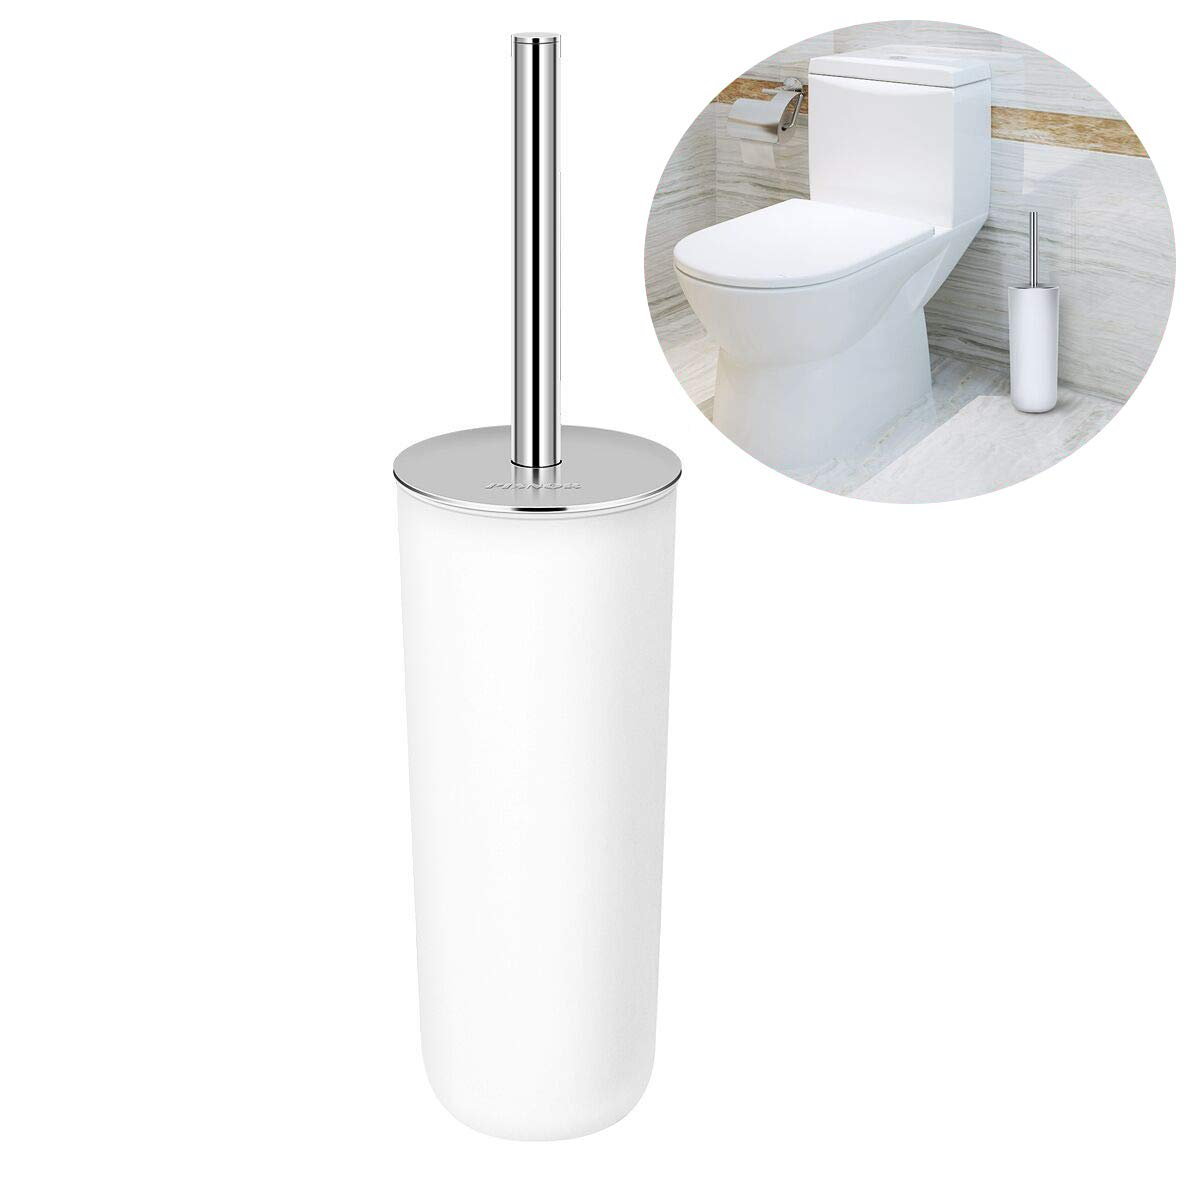 PIXNOR Toilet Brush with Holder in Attractive Modern Design Stainless Steel 15 Inch Handle. Soft, Dense, Long Bristles Clean Easily (White) by PIXNOR